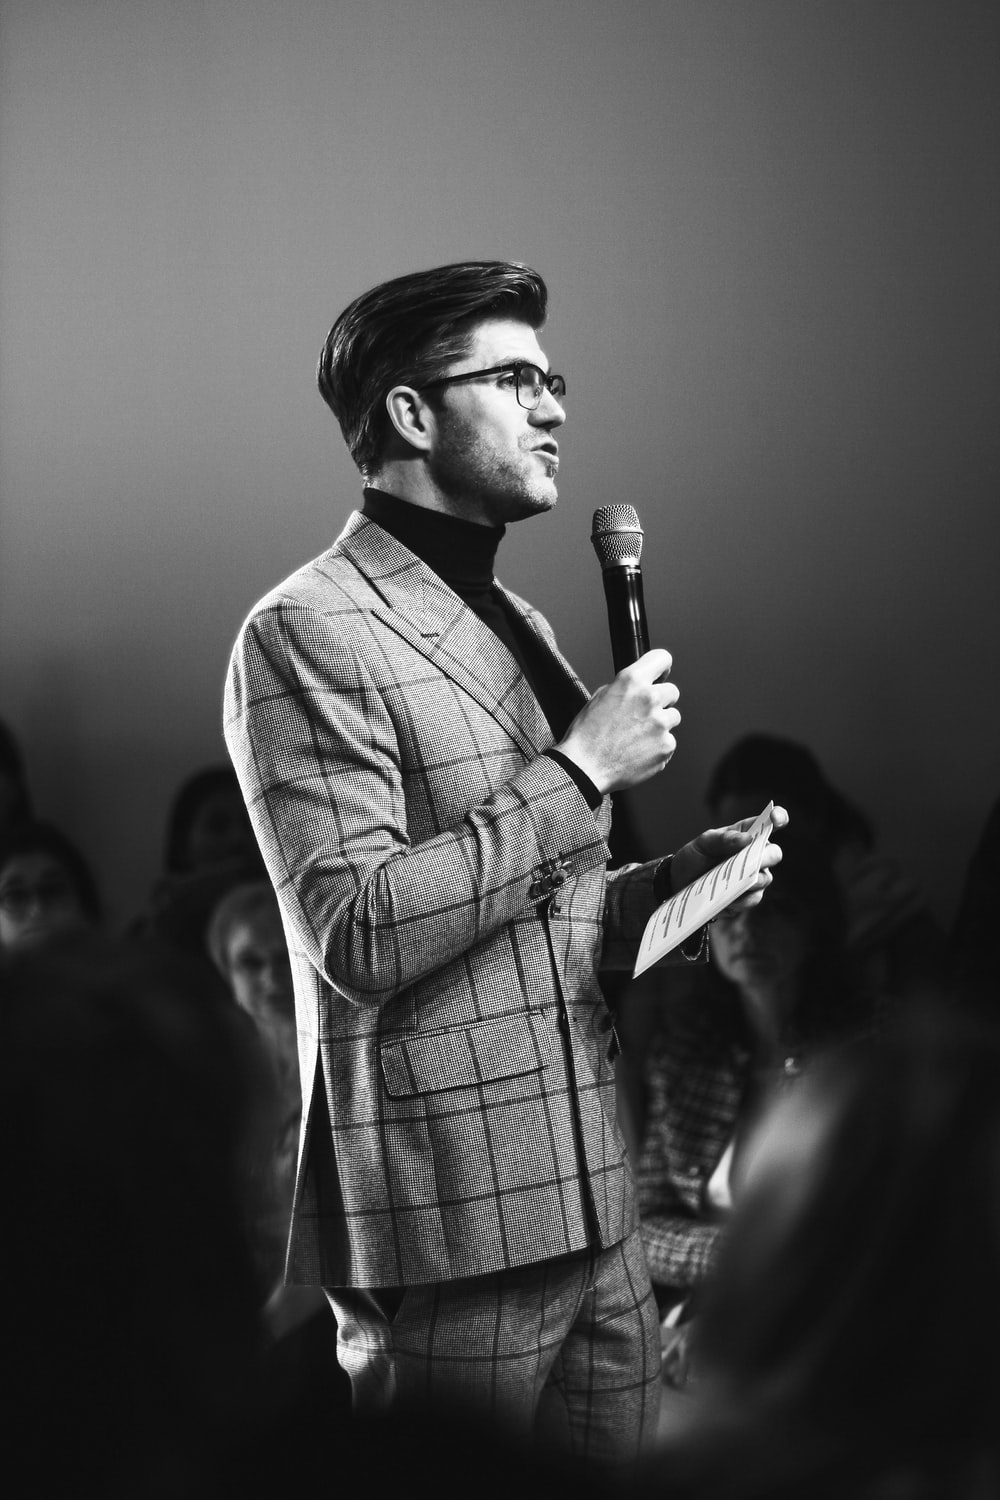 man standing while holding microphone